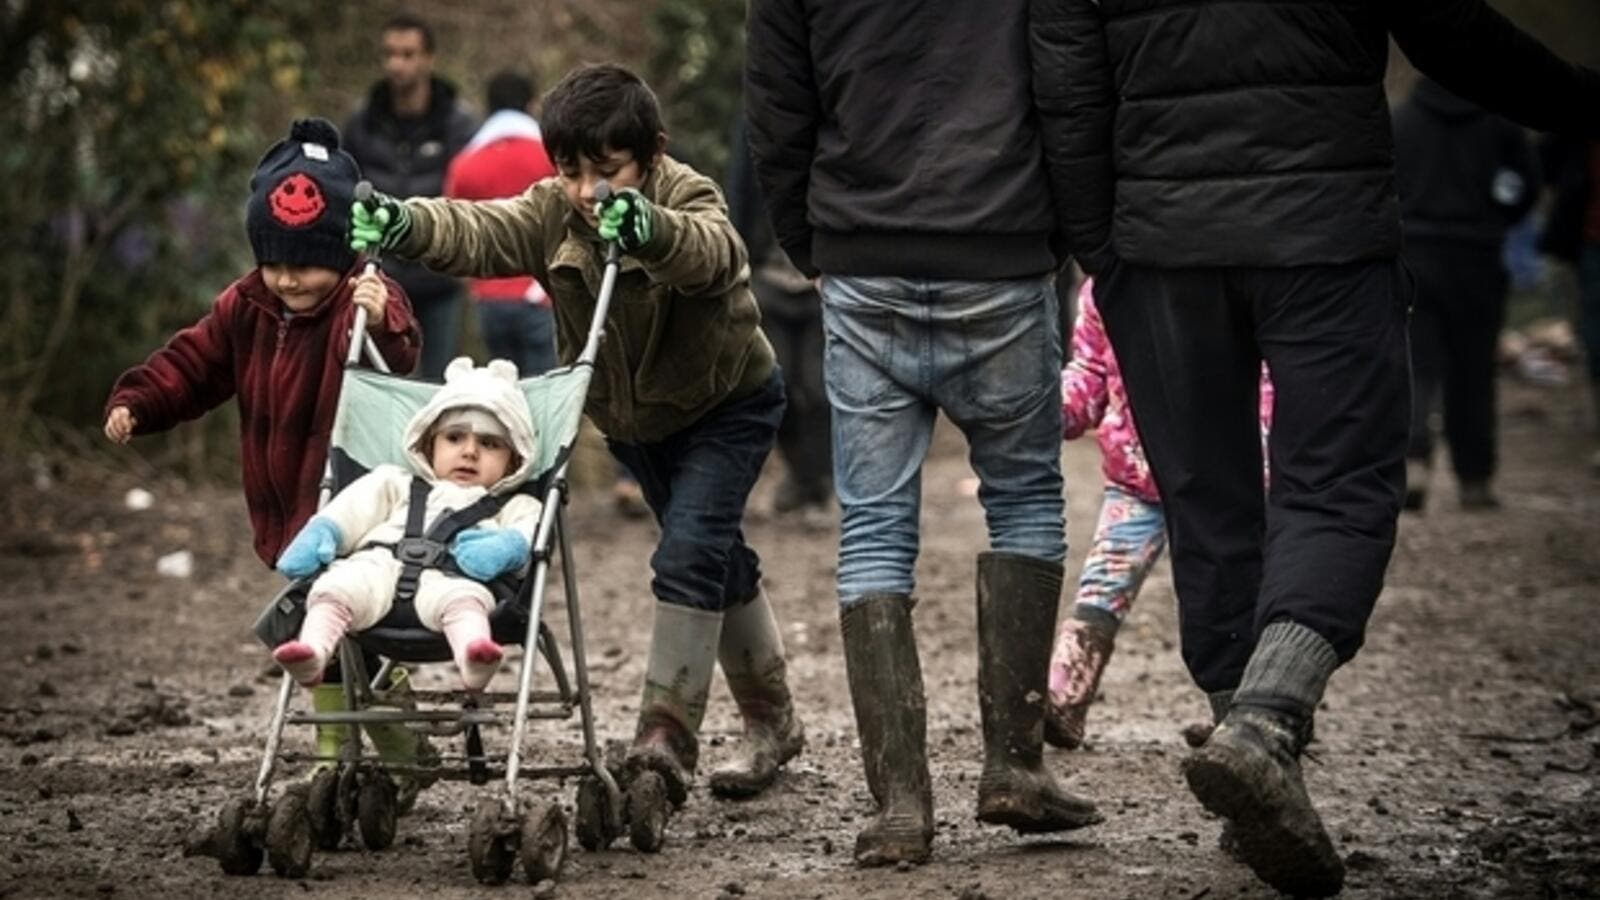 A young boy pushes his sibling through the mud at a makeshift camp close to Calais.0 (AFP/File)